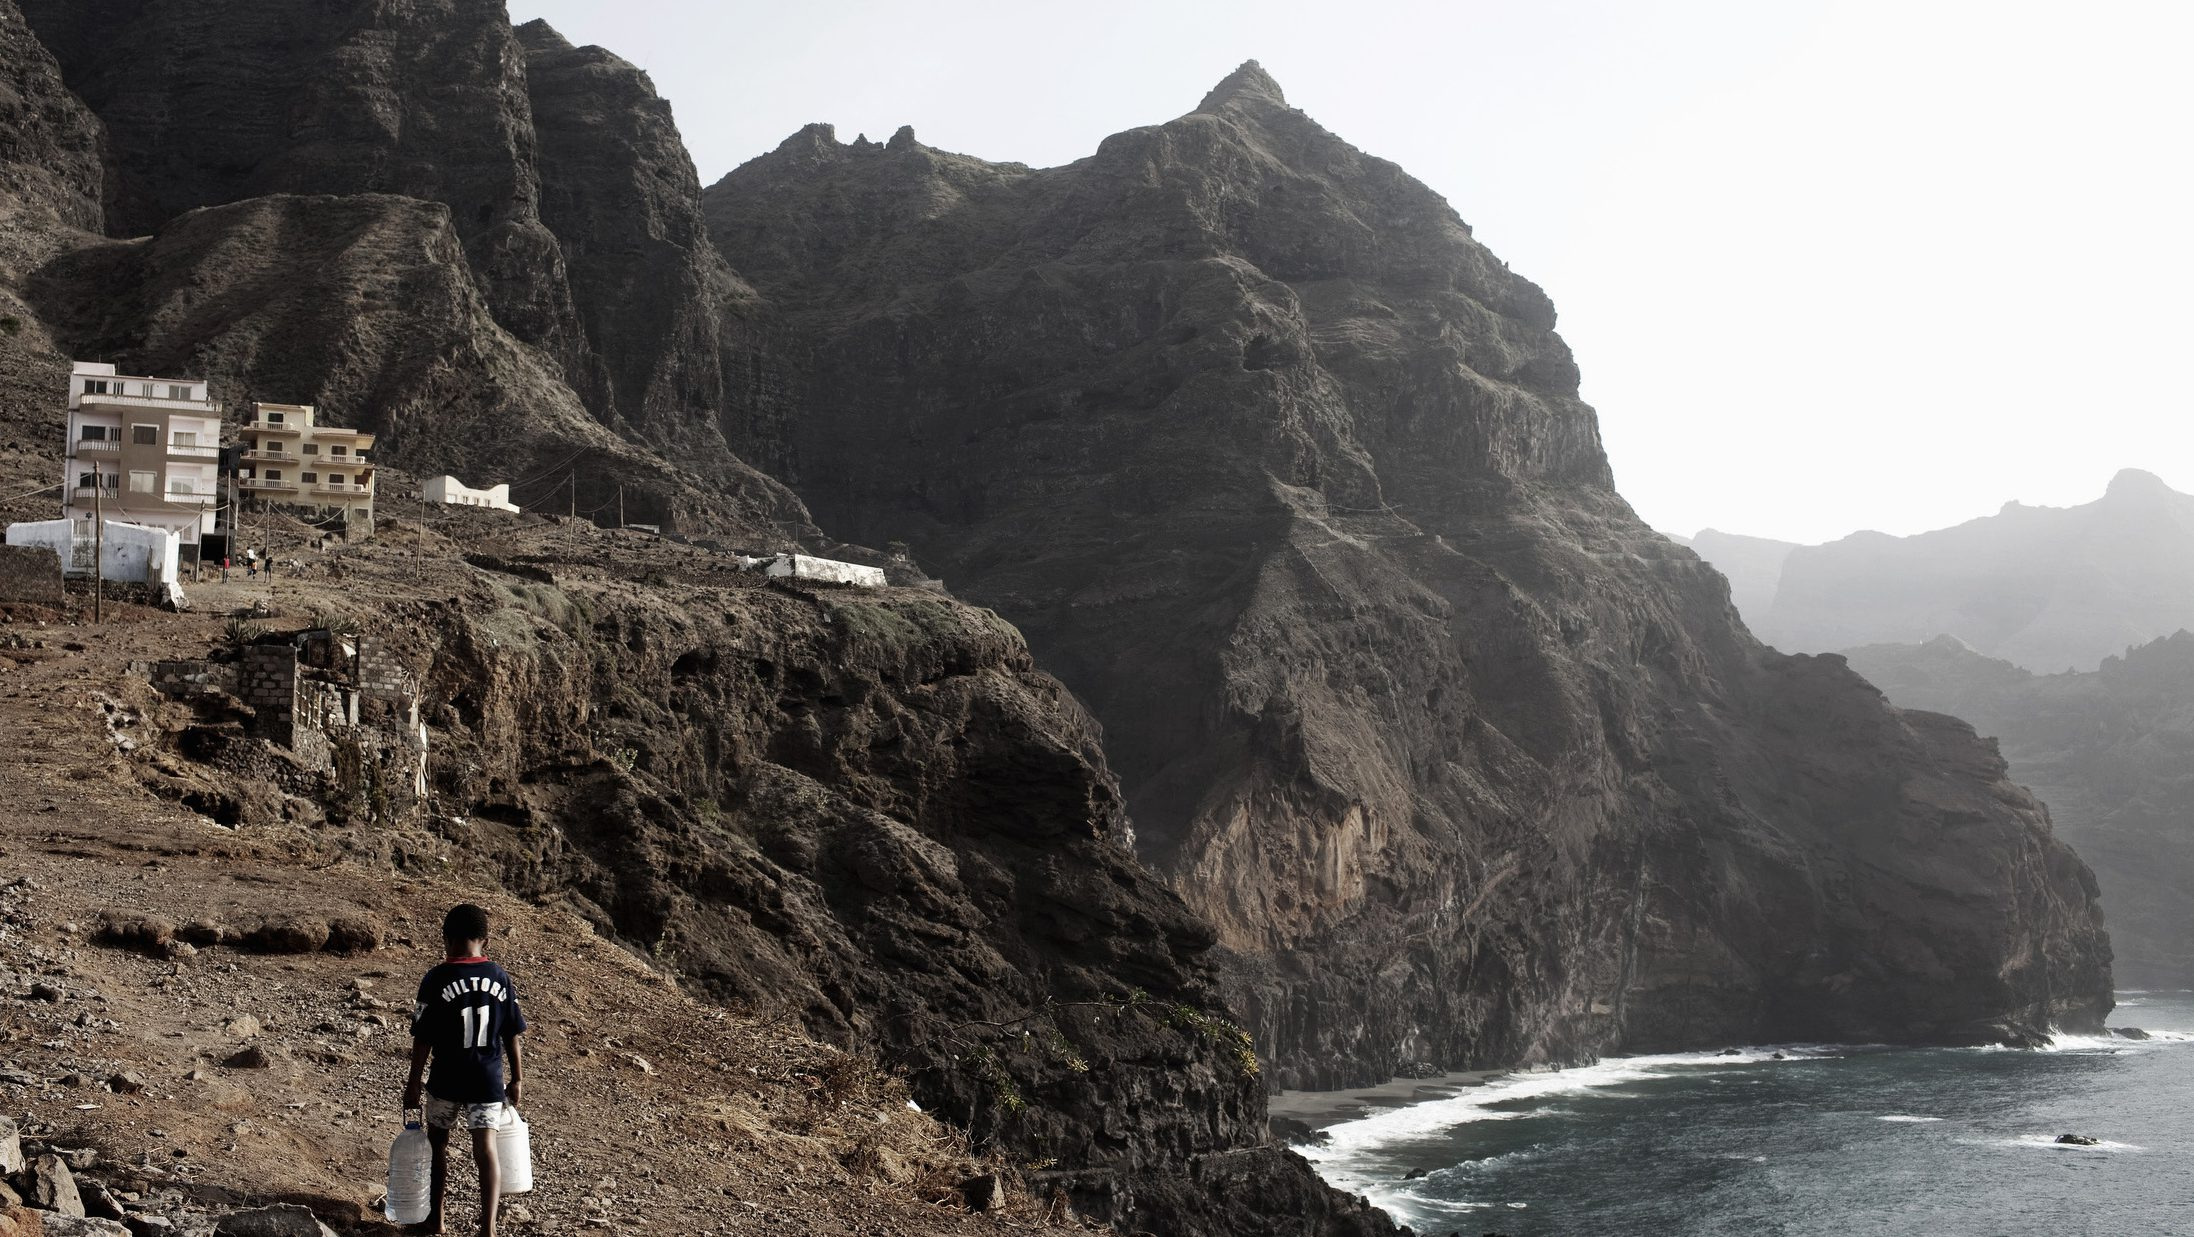 A boy carries containers of water uphill in the town of Porta do Sol on the island of Santo Antao in Cape Verde